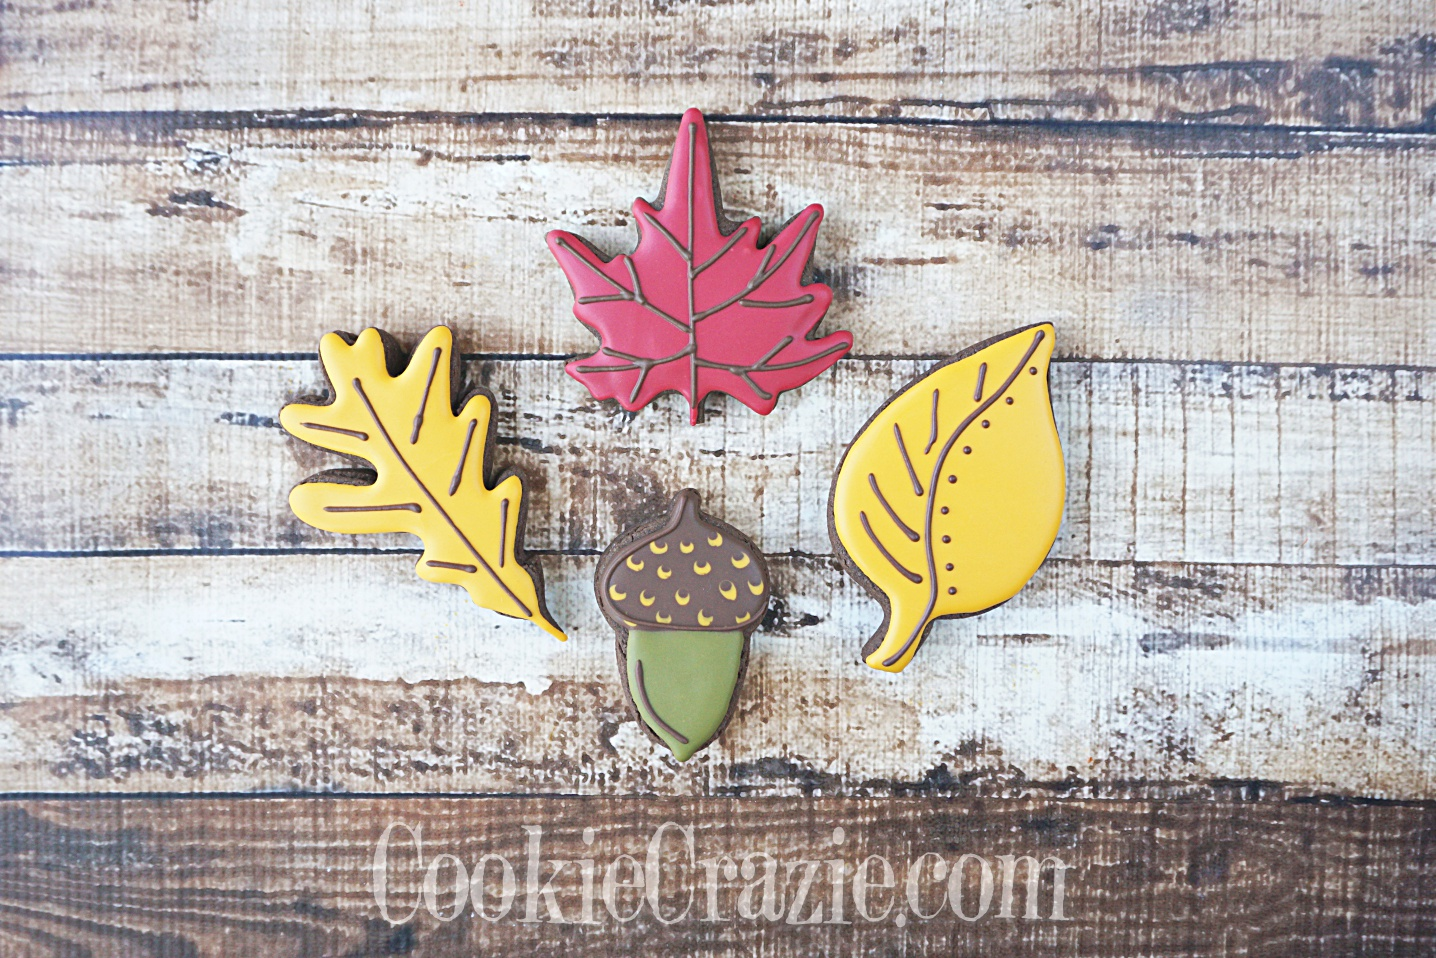 Autumn Leaf and Acorn Decorated Sugar Cookies YouTube video  HERE